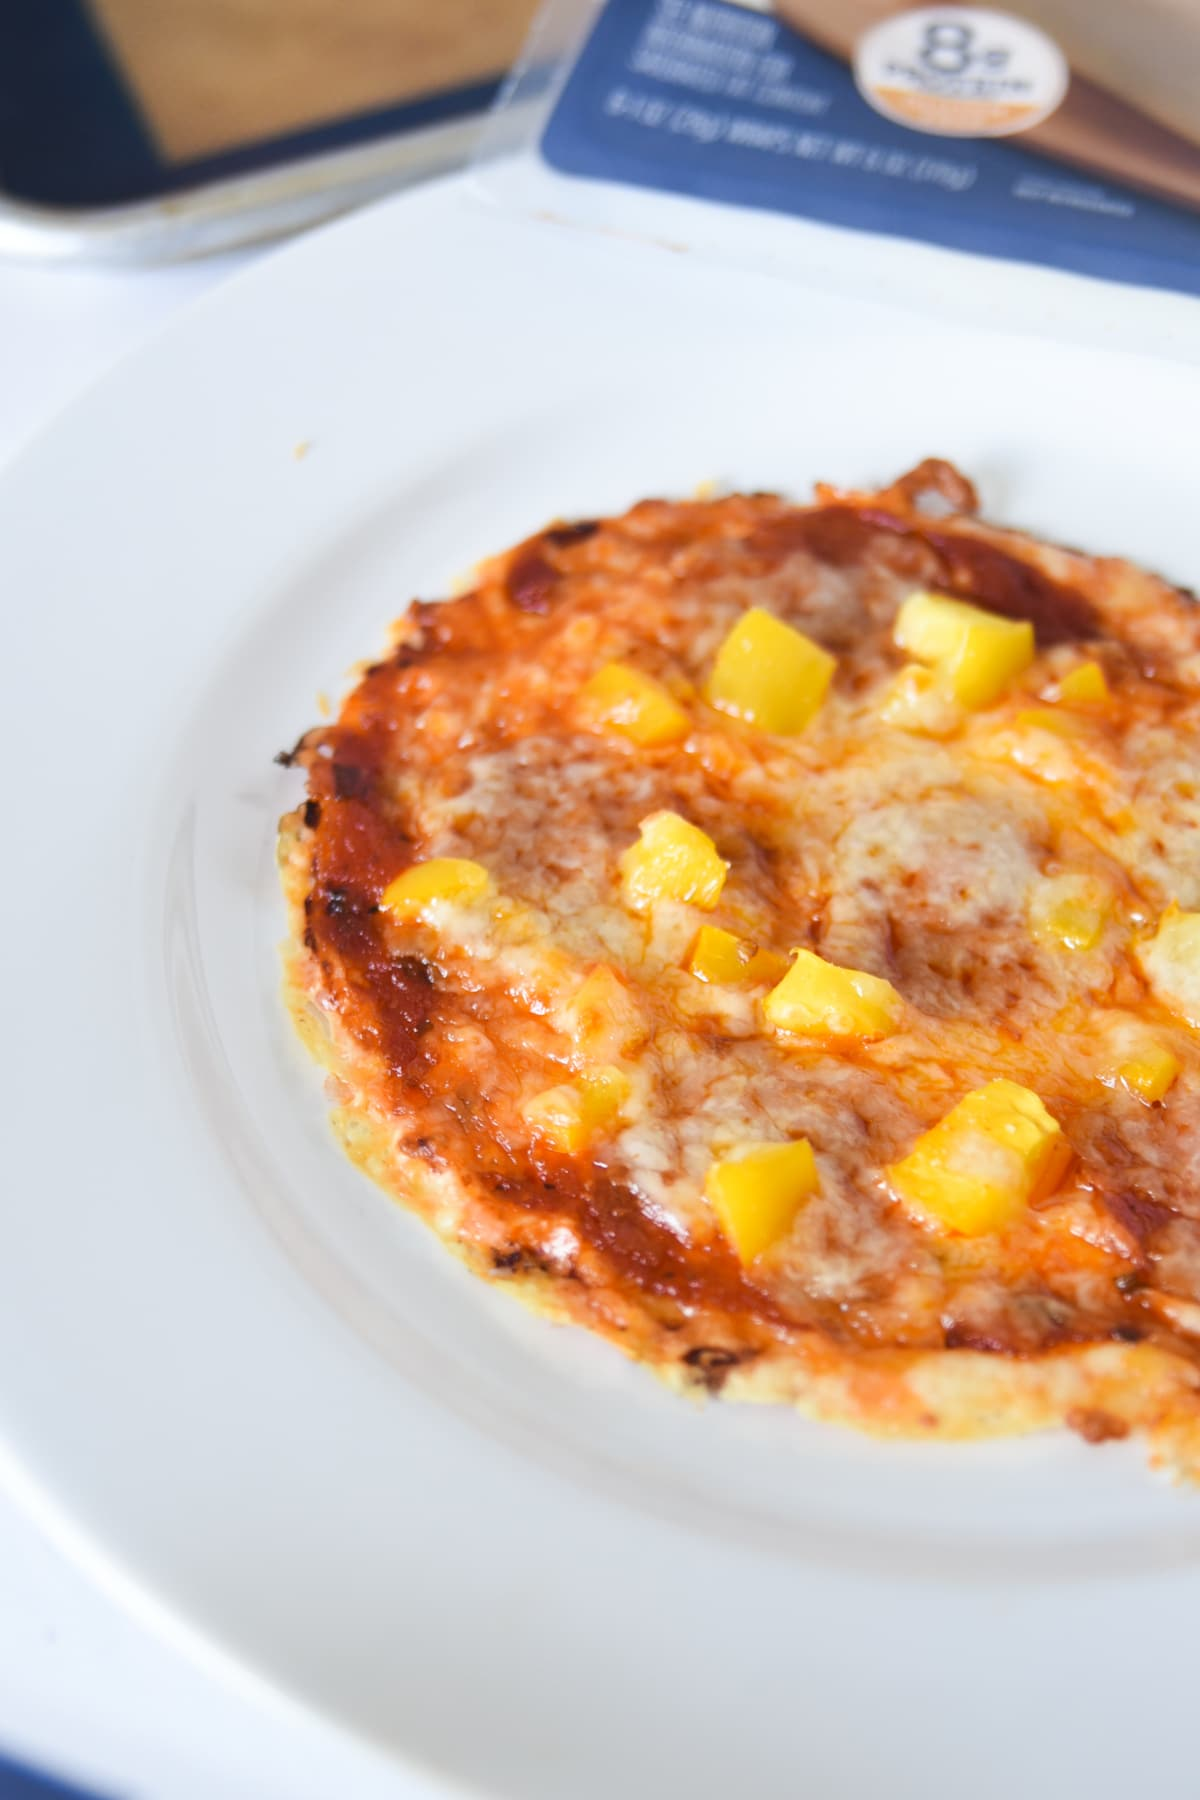 Easy low carb pizza that is crustless. Plated on a white plate.